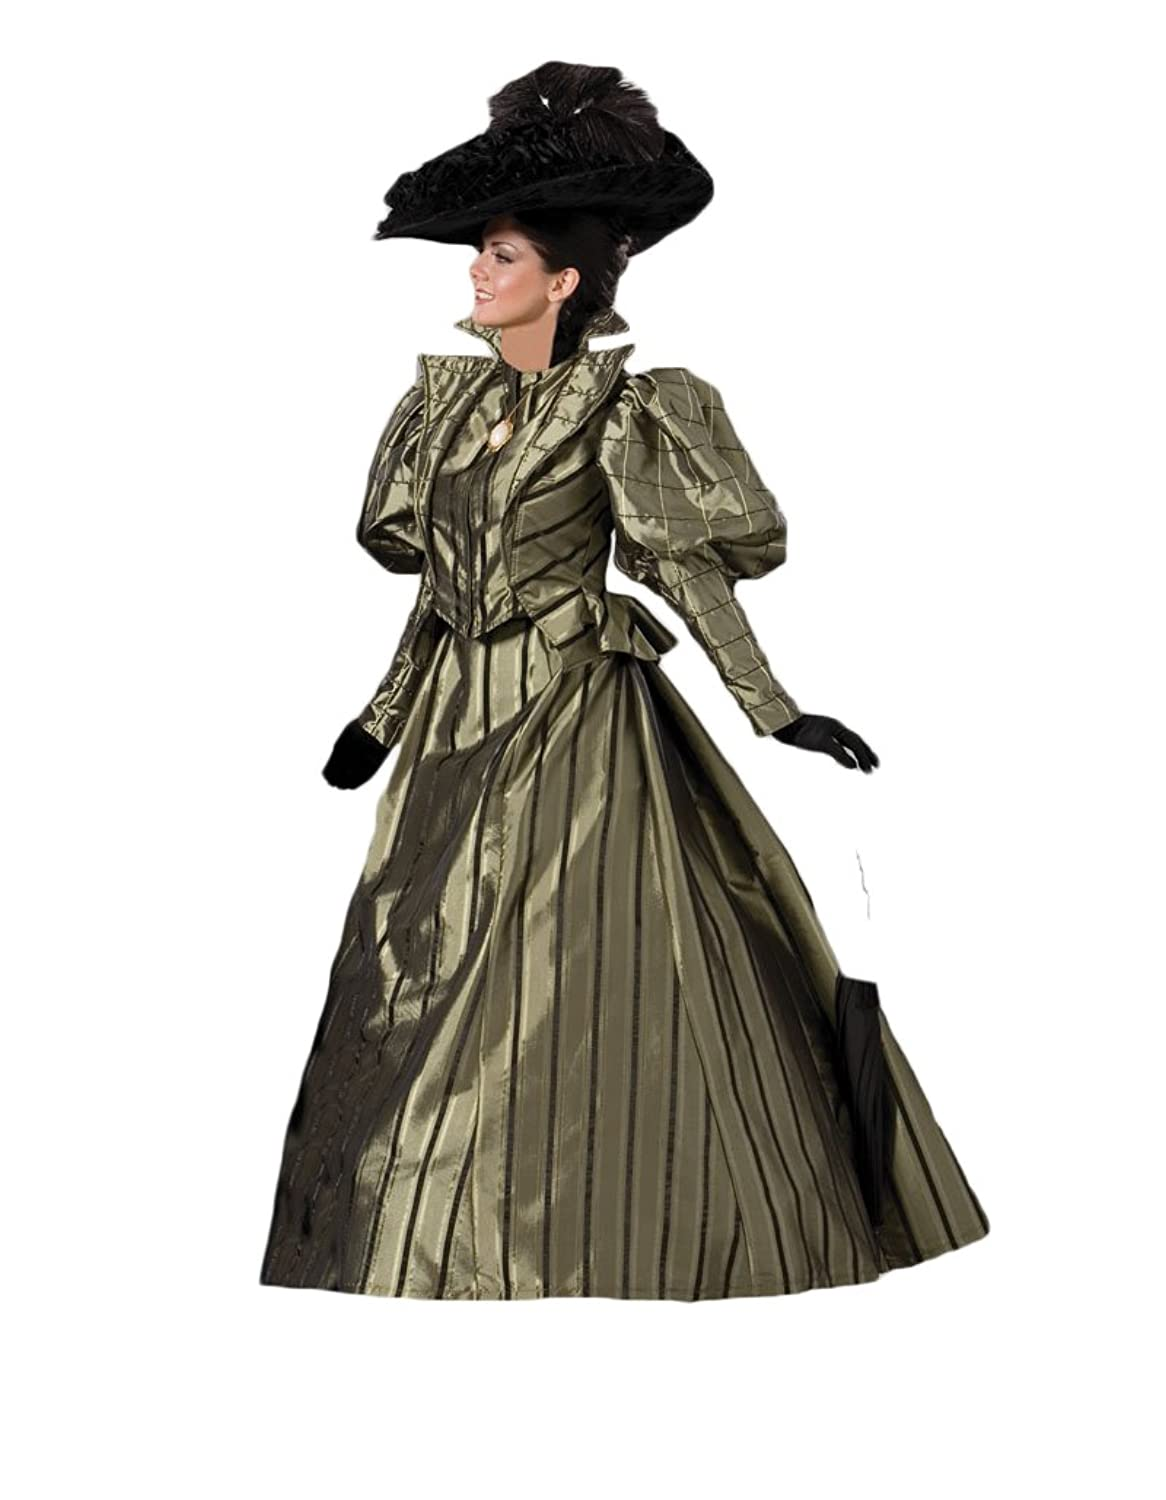 Old Fashioned Dresses | Old Dress Styles Womens Victorian Era Dress Theater Costume $379.99 AT vintagedancer.com